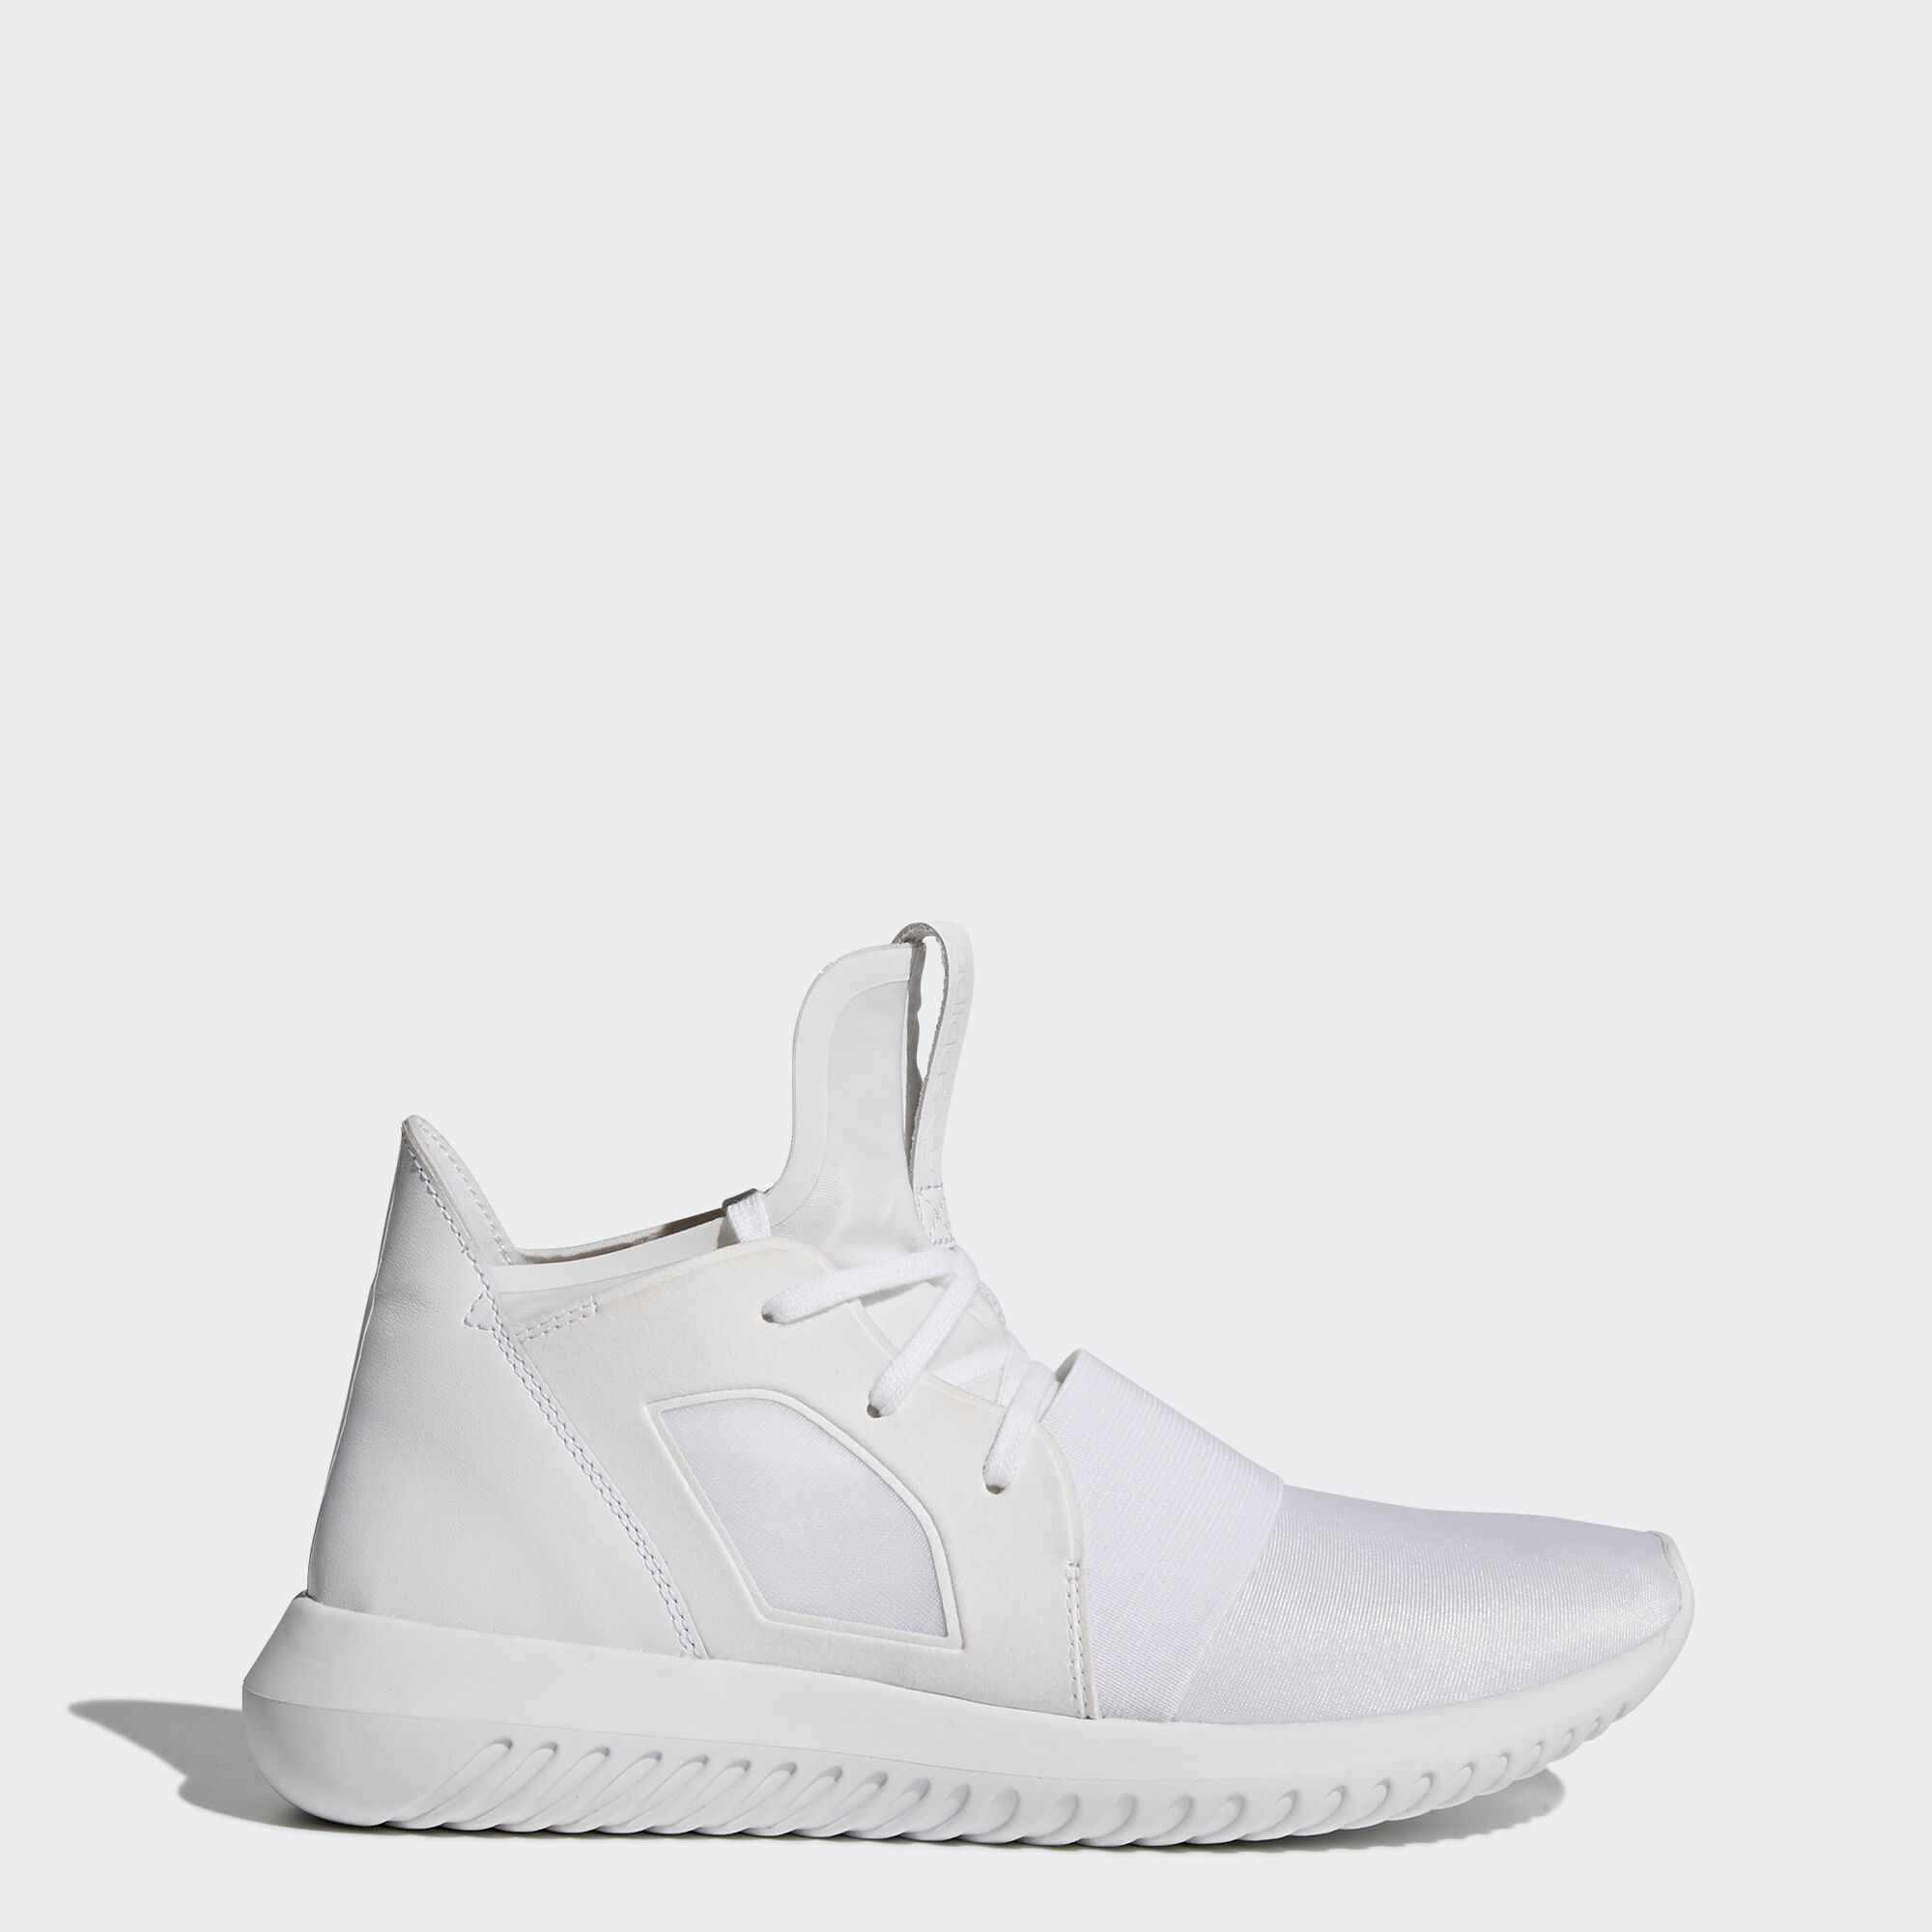 Adidas Tubular Radial Women